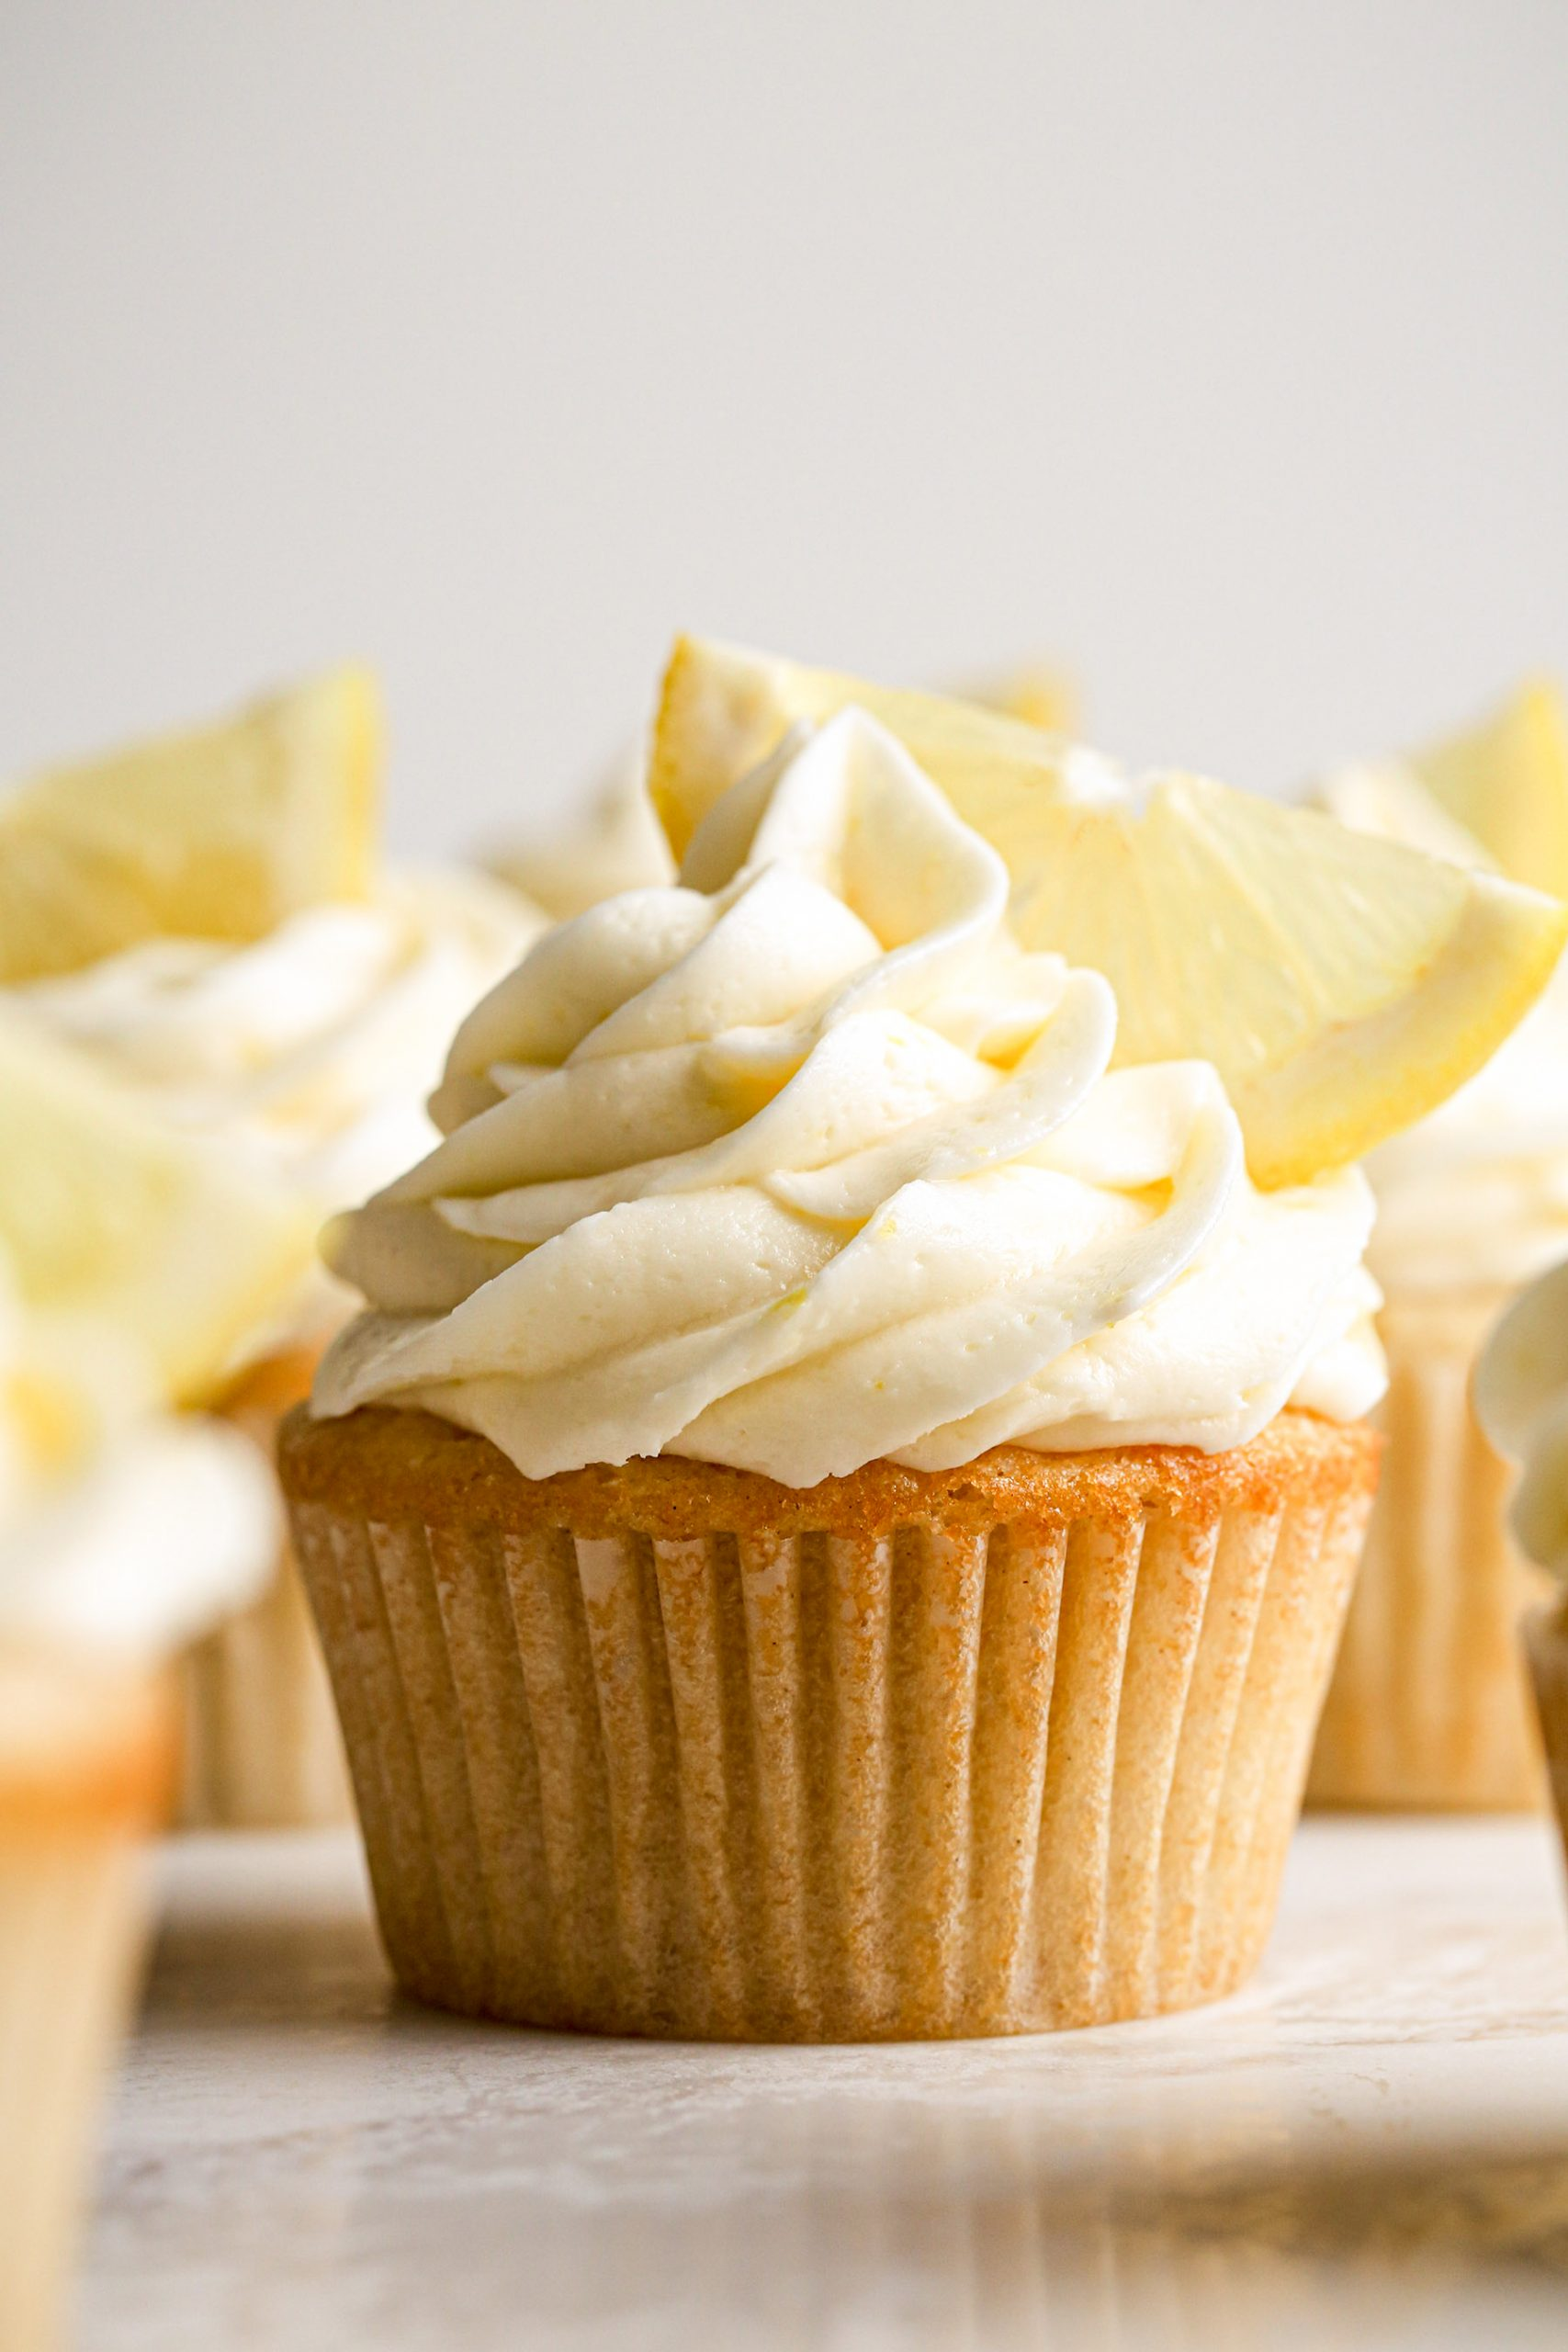 Lemon Cupcakes with Lemon Frosting Close Up | Vegan friendly with gluten free option.